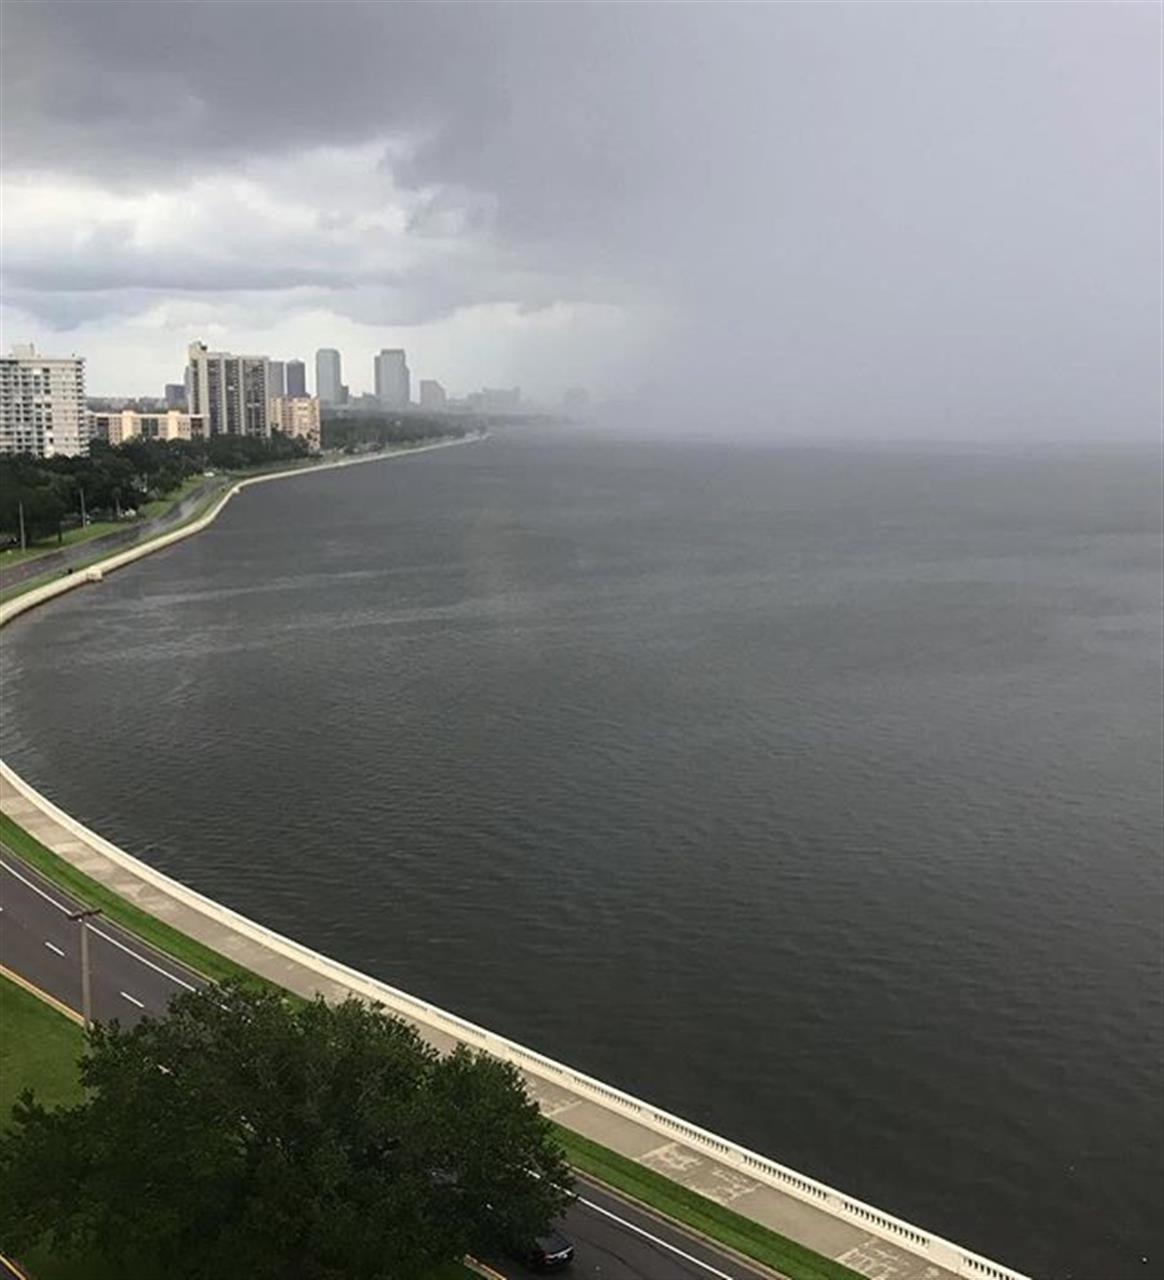 Even in storms you can find positive perspective. #tampabay #bayshore #smithsells #smithandassociates #leadingrelocal